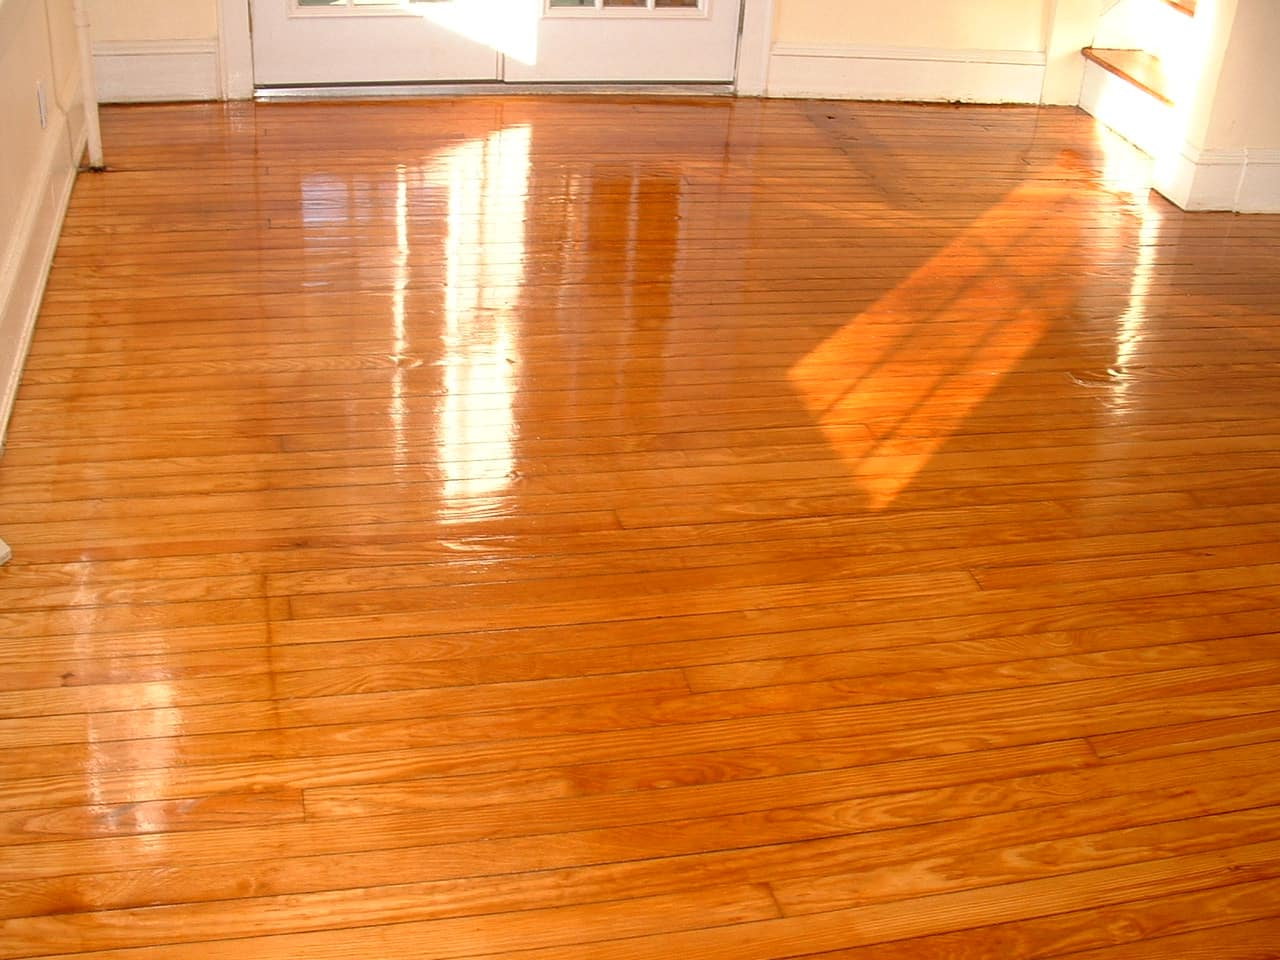 How Much Does It Cost to Refinish Hardwood Floors? - Zillow